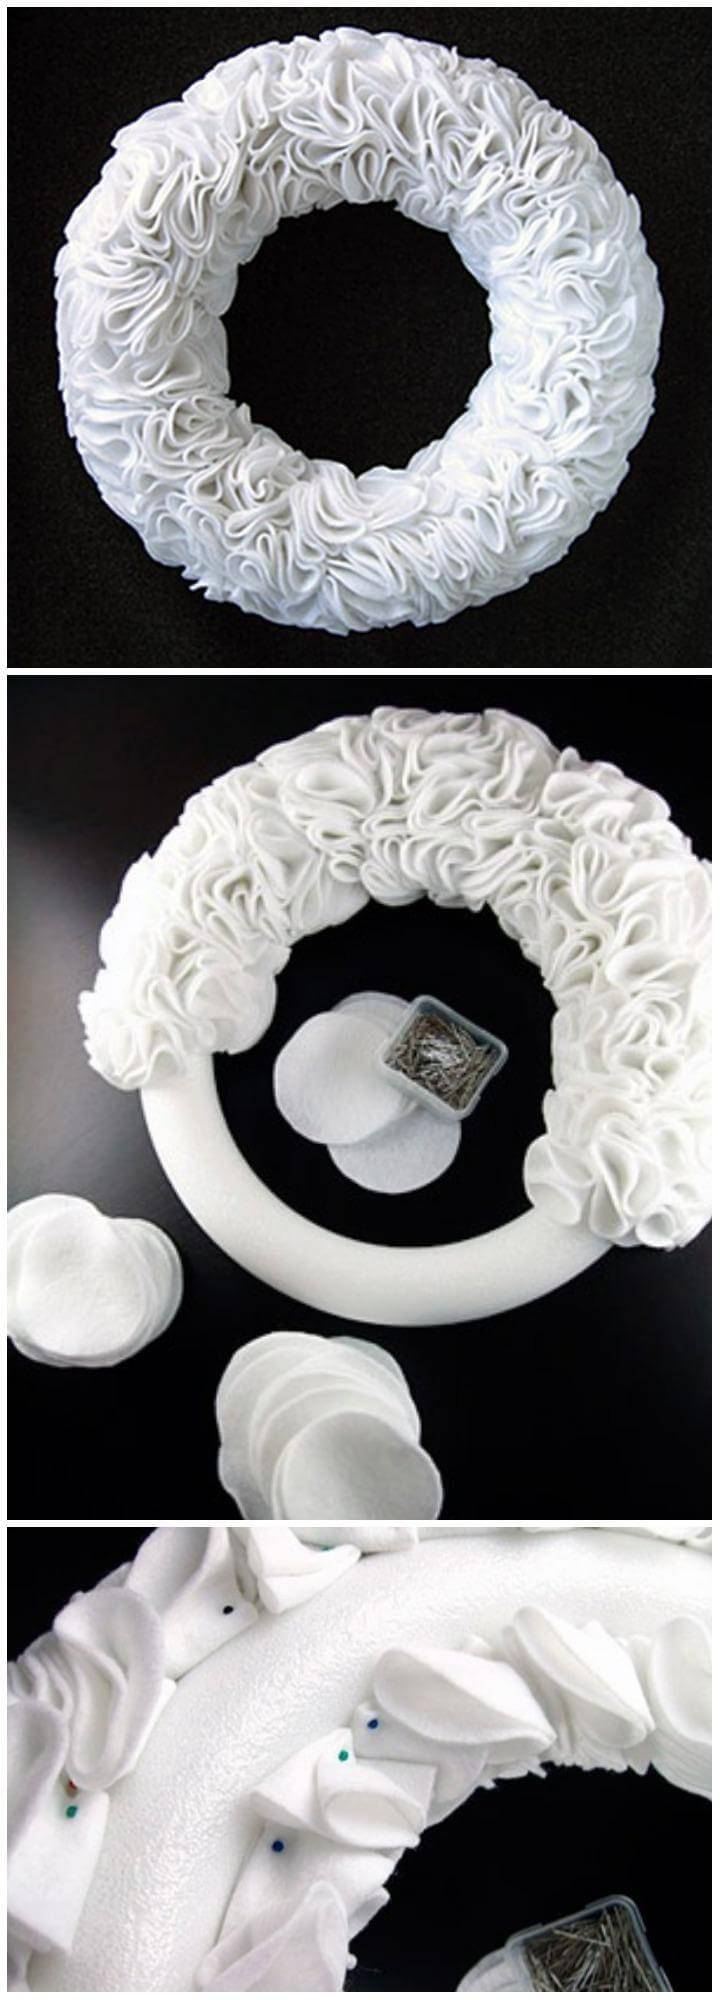 DIY Adorable White Ruffly Felt Wreath